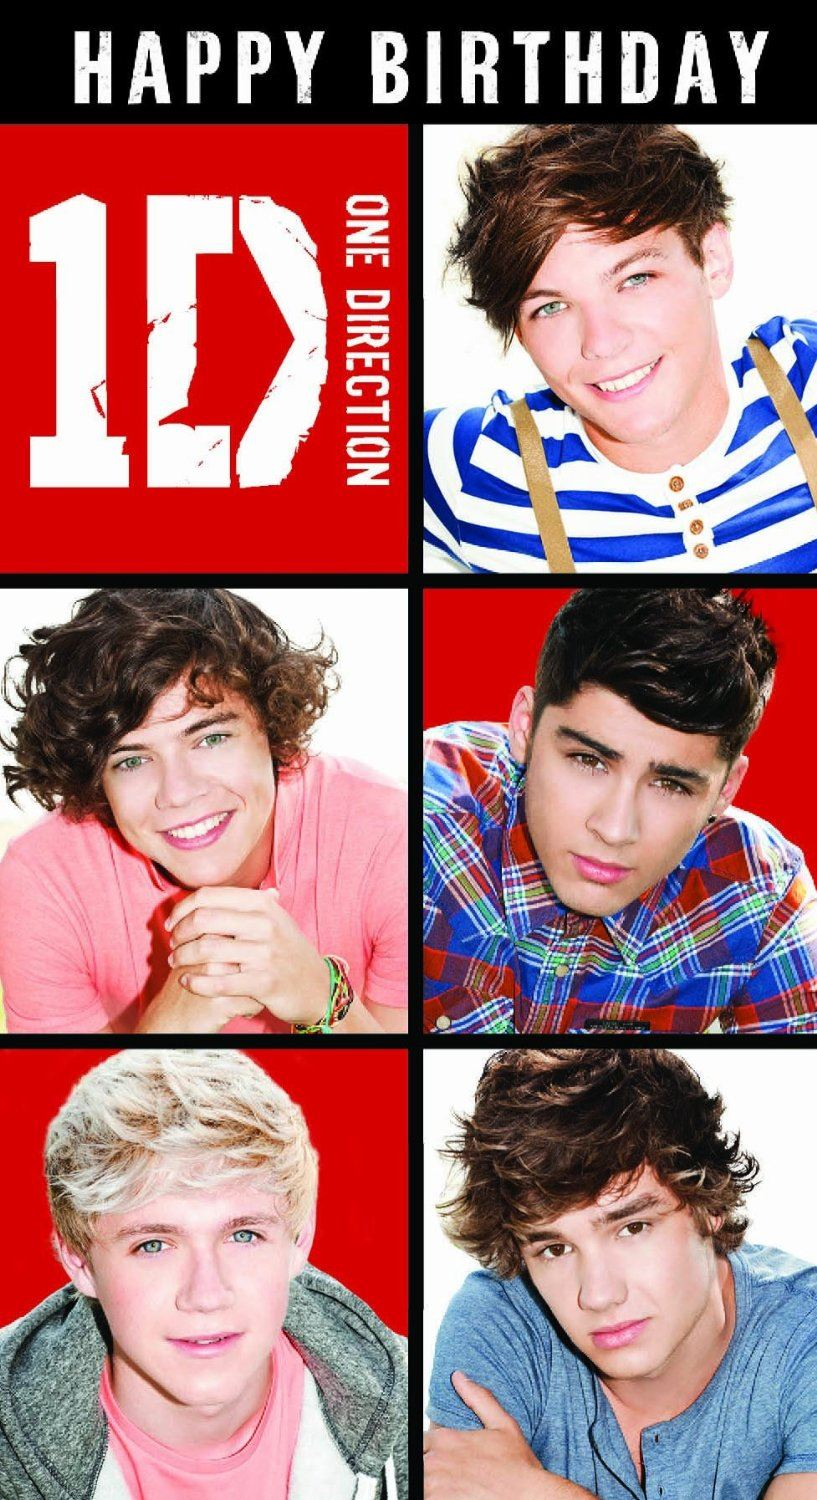 One Direction Age 10 Birthday Greeting Card – One Direction Birthday Greeting